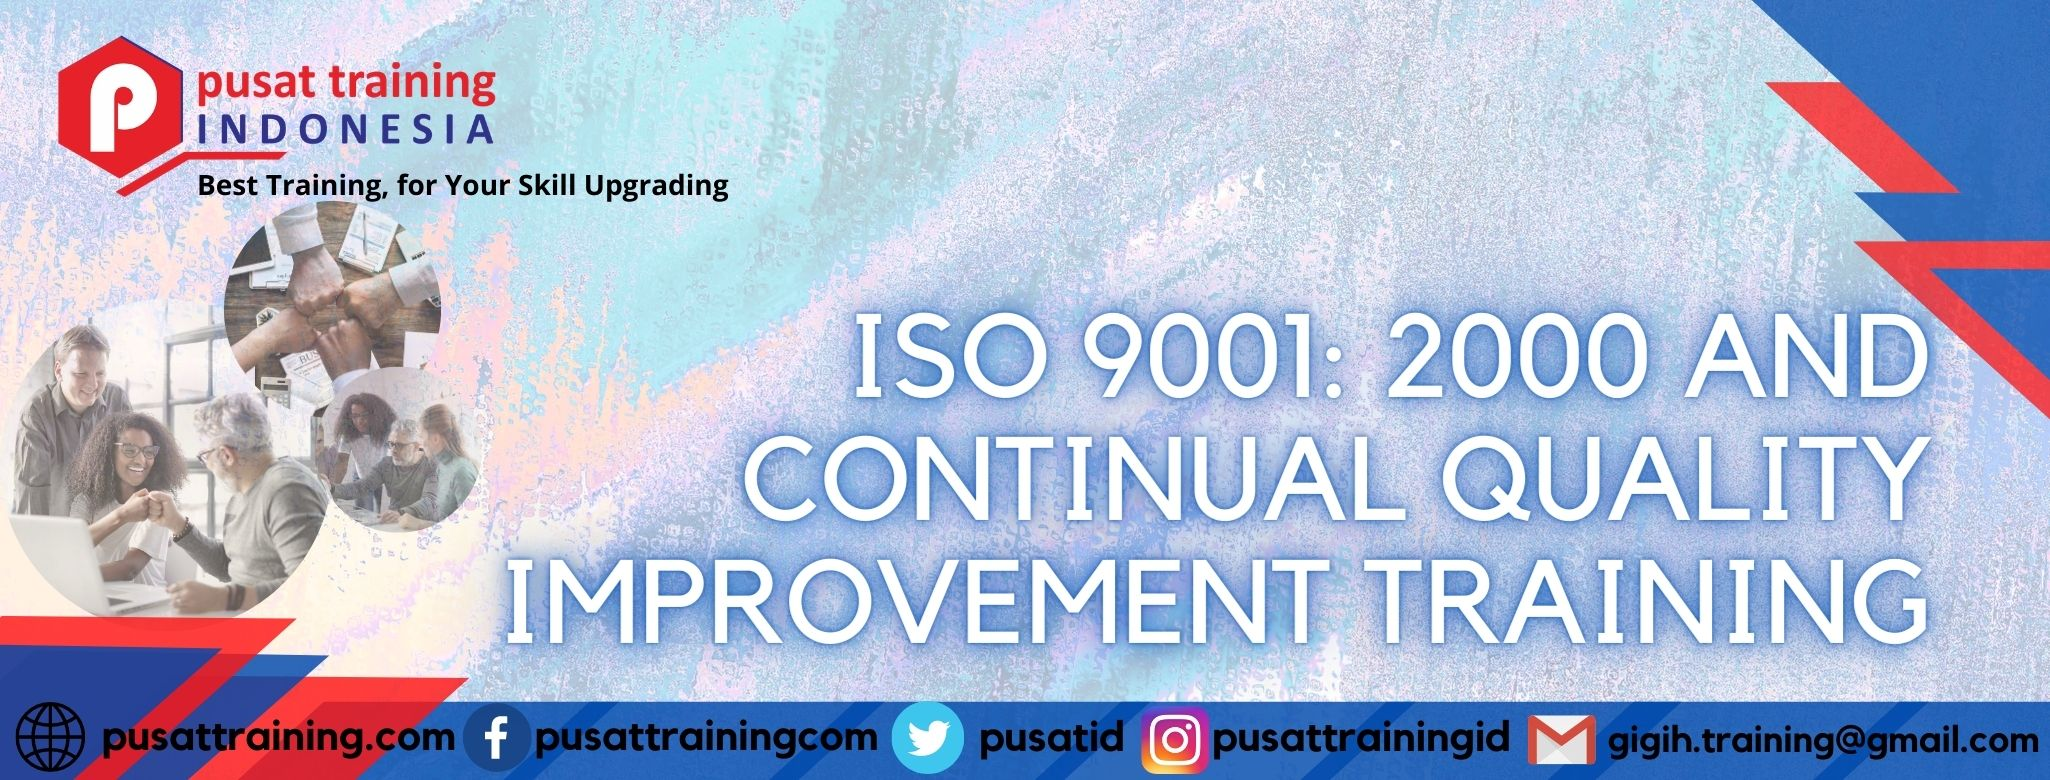 iso-9001-2000-and-continual-quality-improvment-training